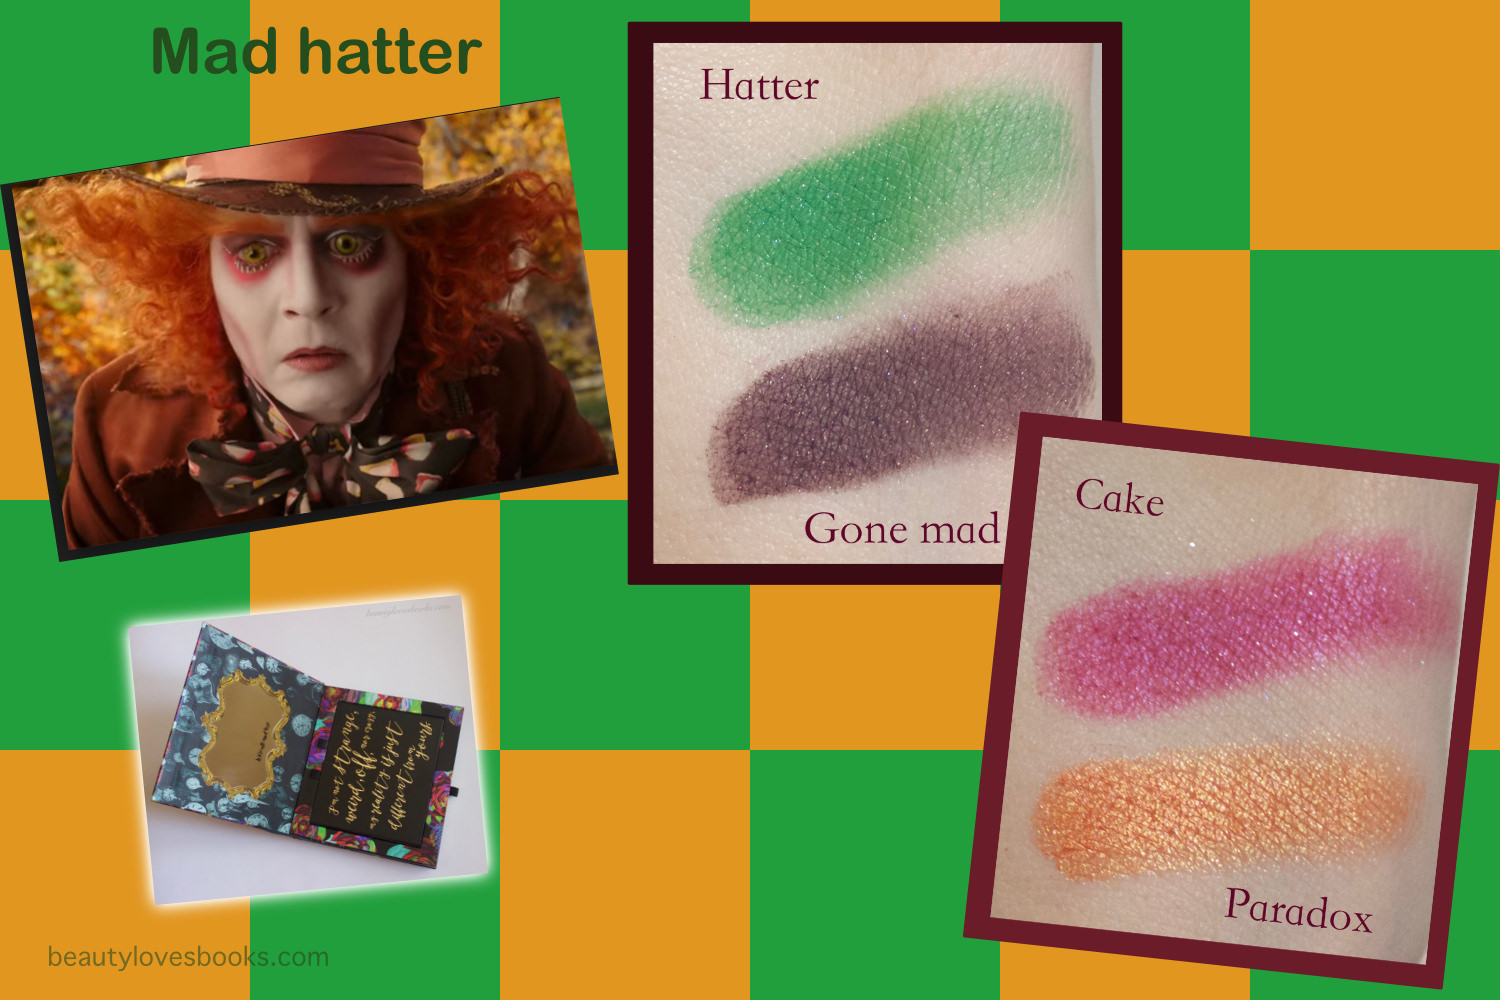 Urban Decay X Alice through the looking glass eyeshadow palette swatches, Mad hatter look